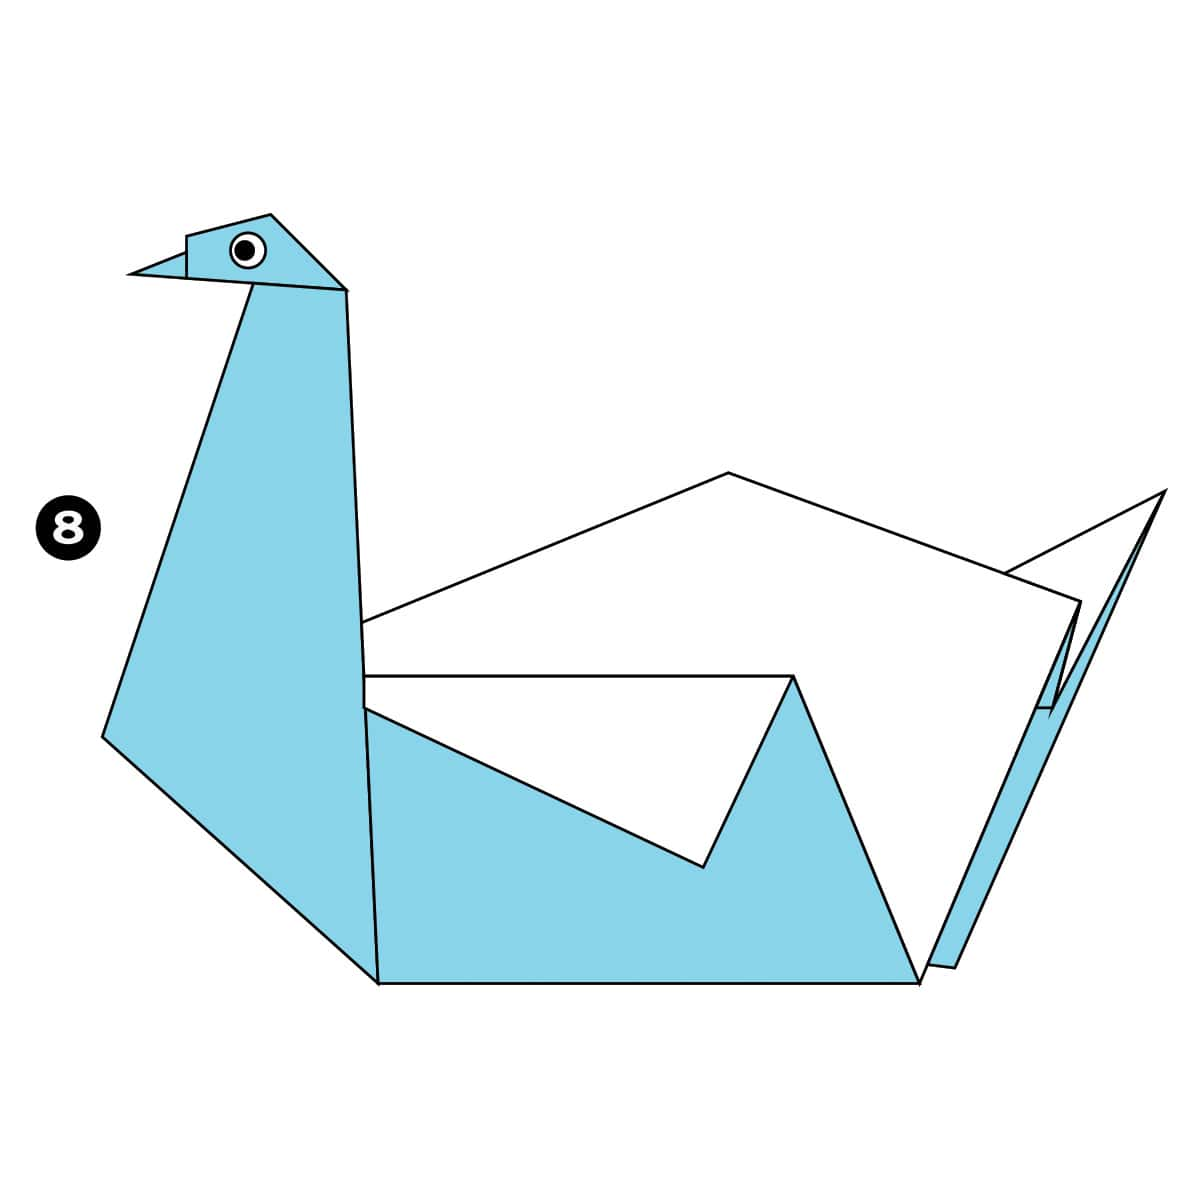 How To Make An Easy Origami Swan Pin Diagram On Pinterest Step 8